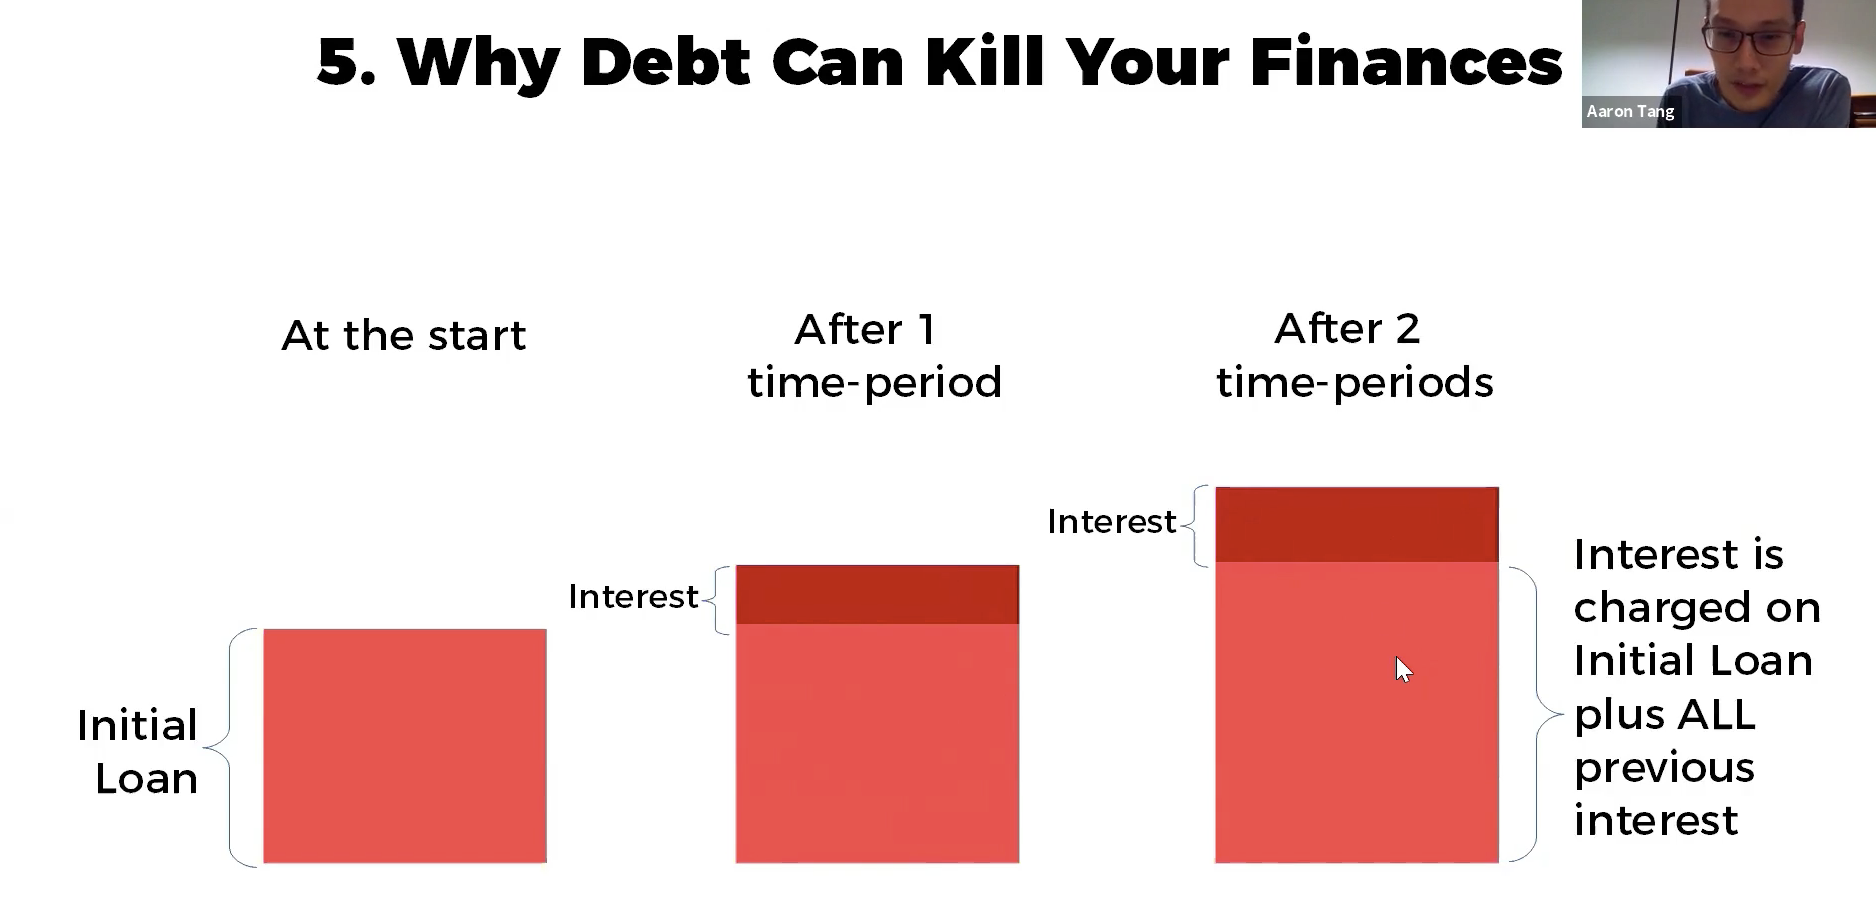 Personal Finance & Money in 9 Diagrams